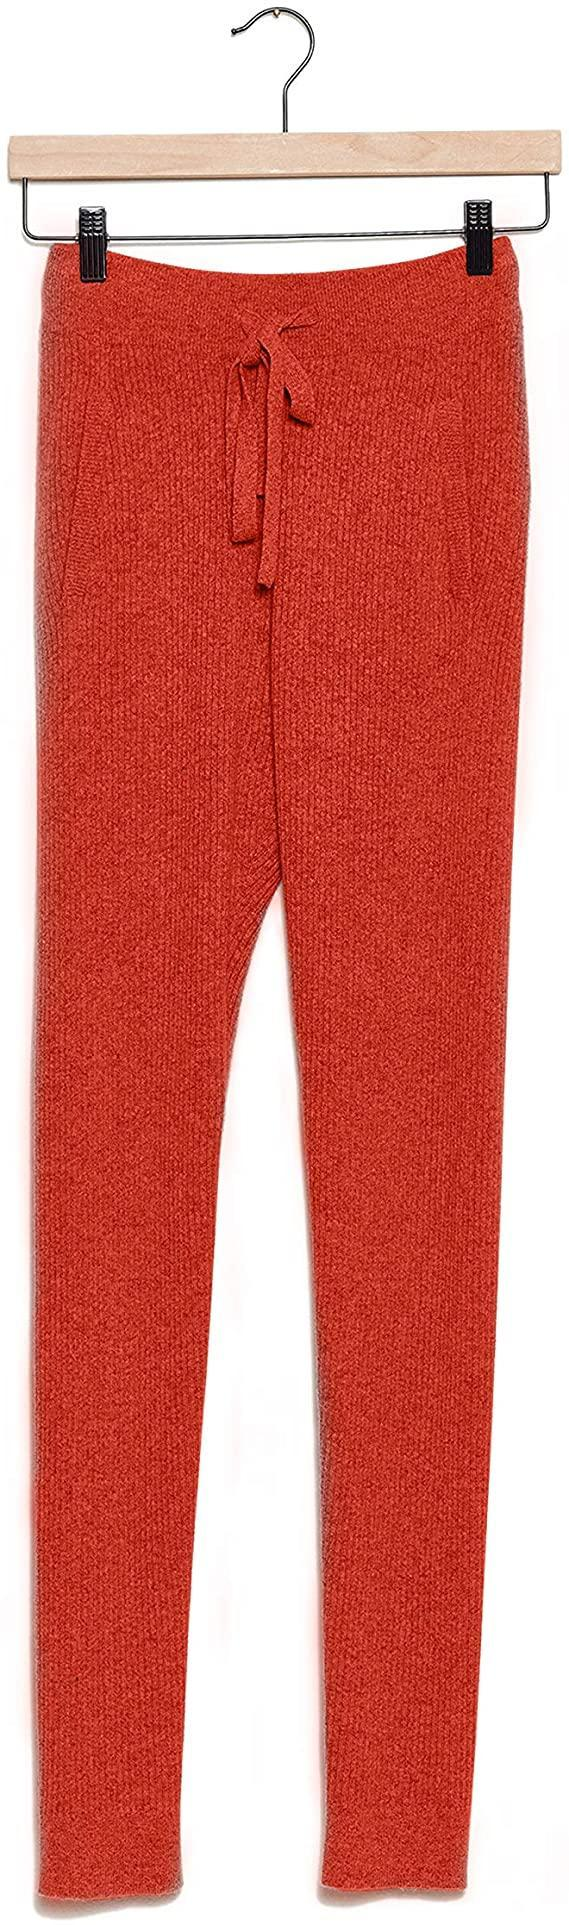 "<h2>State Cashmere Pure Cashmere Knitted Pants</h2><br>We love the super-slim fit and ribbed texture of these under-$200 cashmere joggers. (A matching top is available, for those who are looking to take this look head to toe.)<br><br><strong>State Cashmere</strong> Pure Cashmere Knitted Pants, $, available at <a href=""https://www.amazon.com/State-Cashmere-Womens-Knitted-Pants/dp/B08B3KNCKB"" rel=""nofollow noopener"" target=""_blank"" data-ylk=""slk:Amazon"" class=""link rapid-noclick-resp"">Amazon</a>"